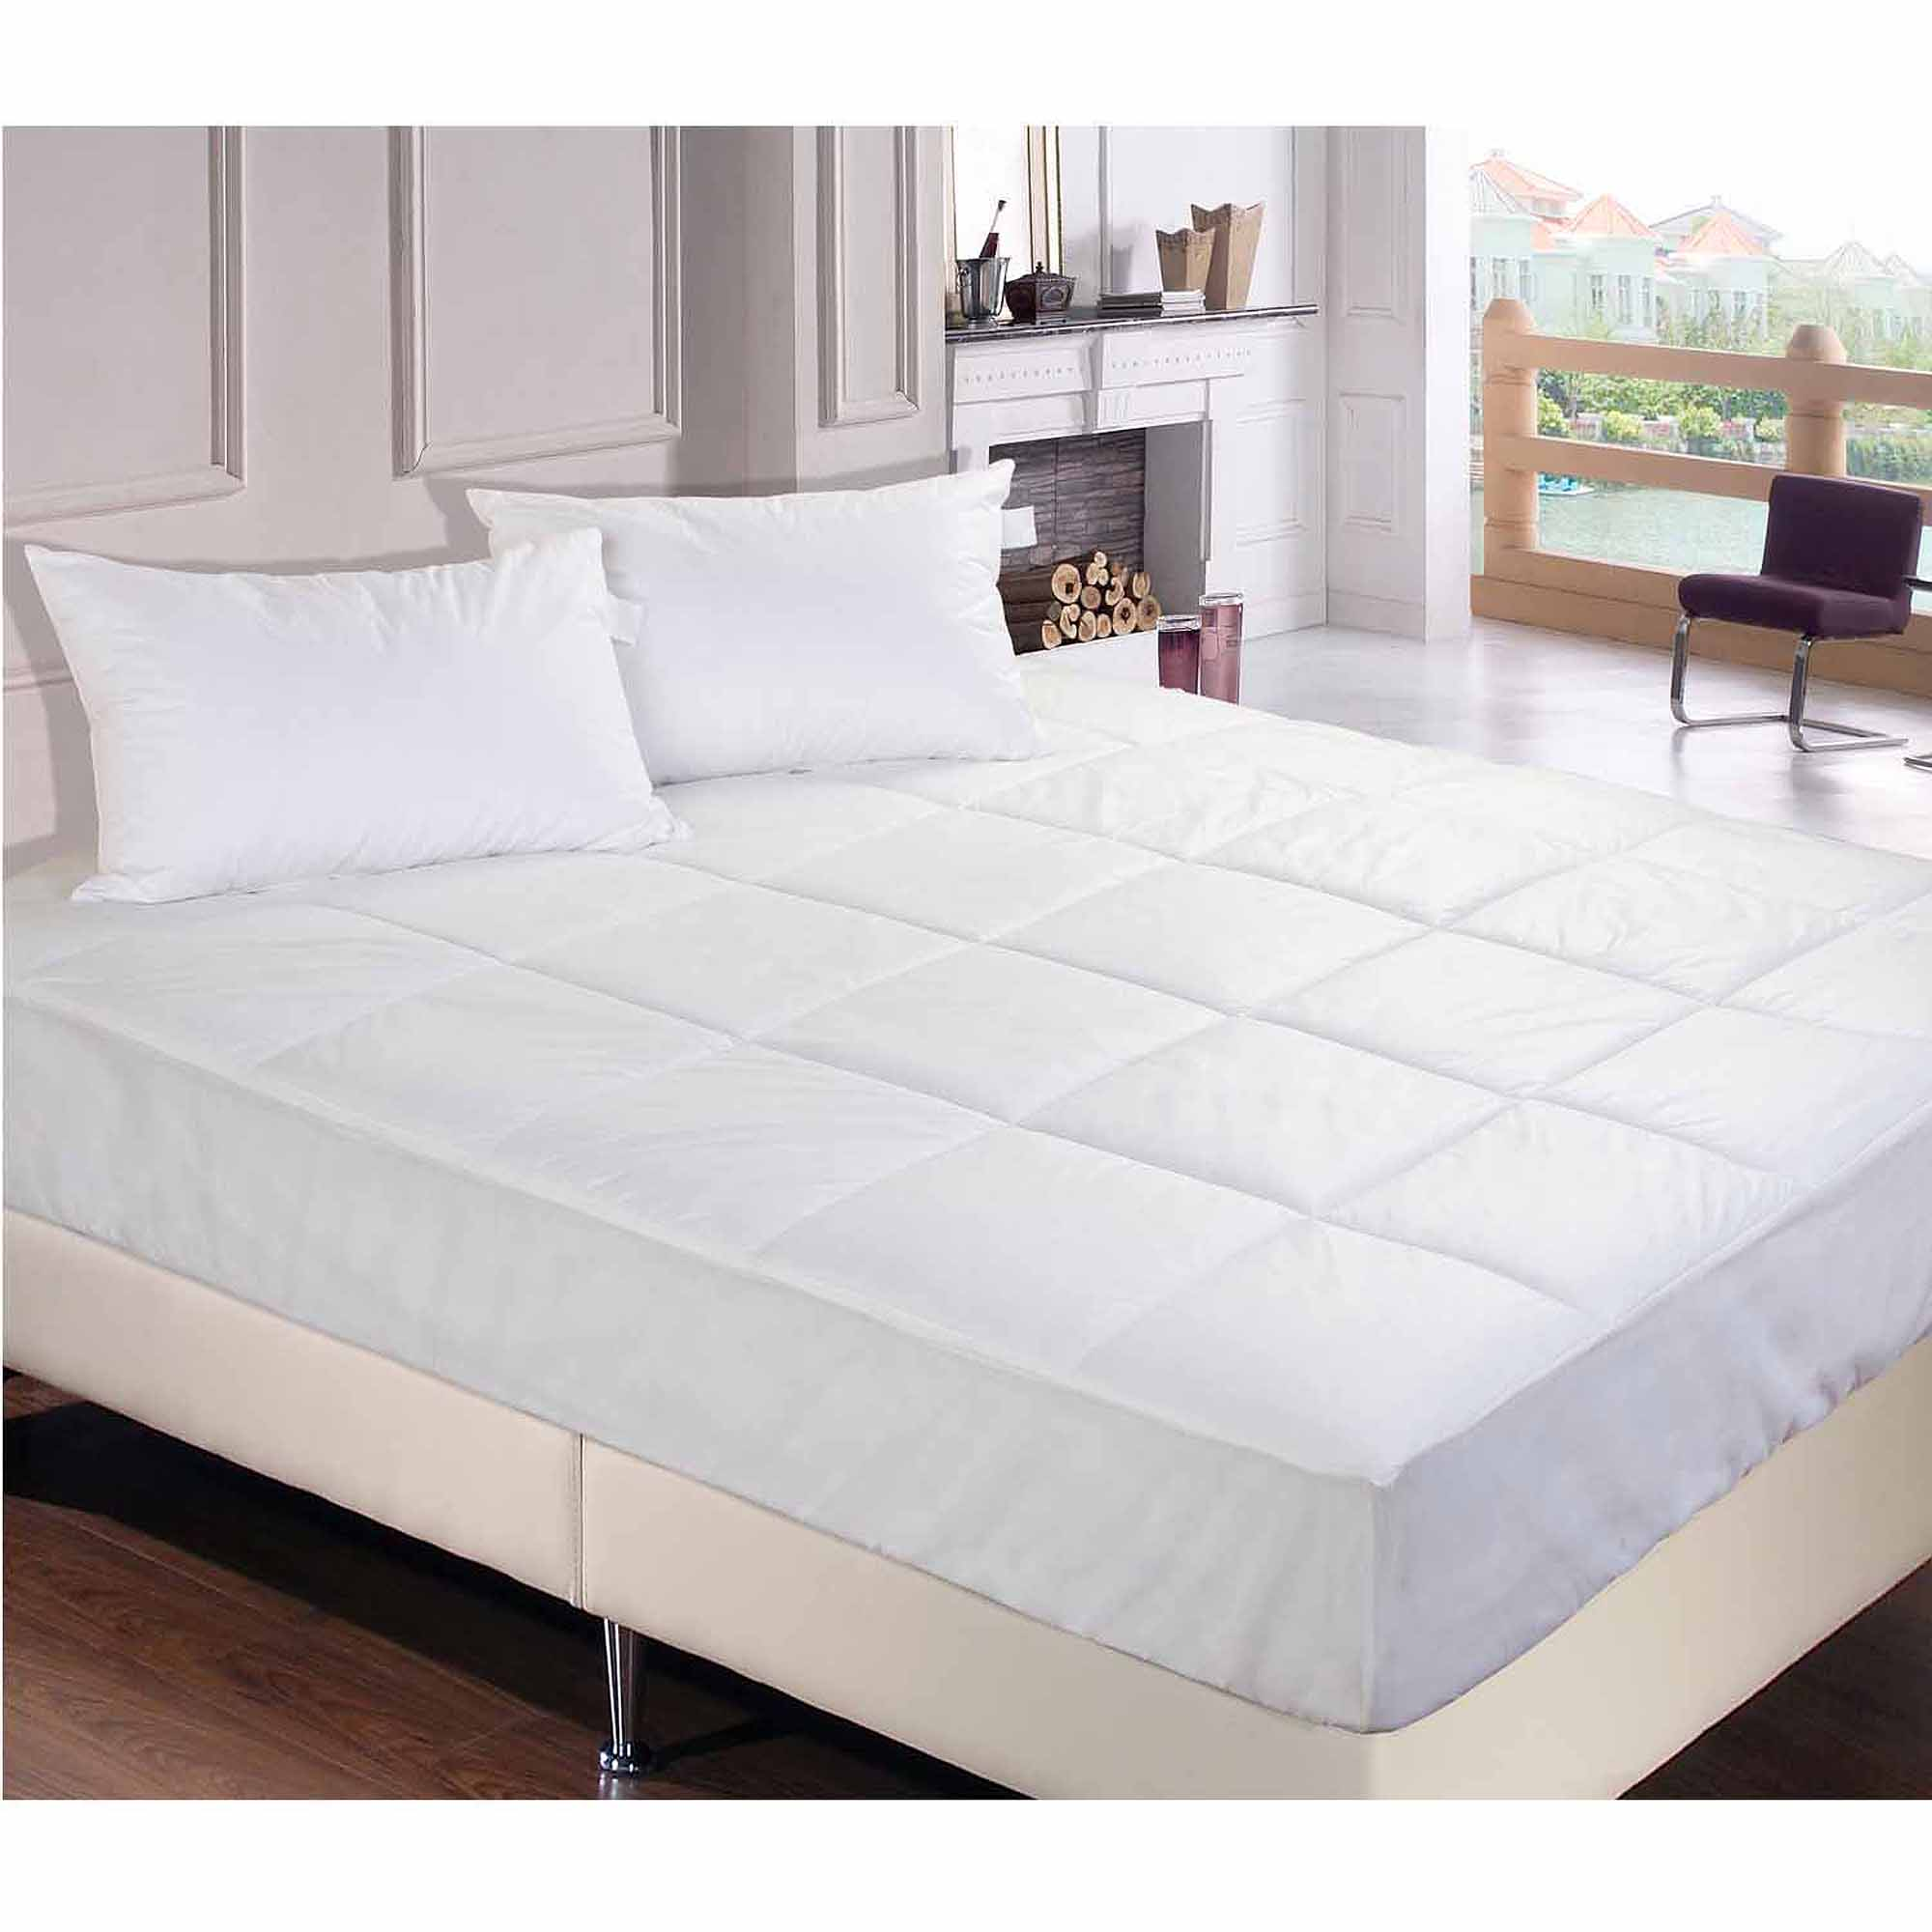 Permafresh Bed Bug and Dust Mite Control Water-Resistant Polypropylene Mattress Pad by Epoch Hometex Inc